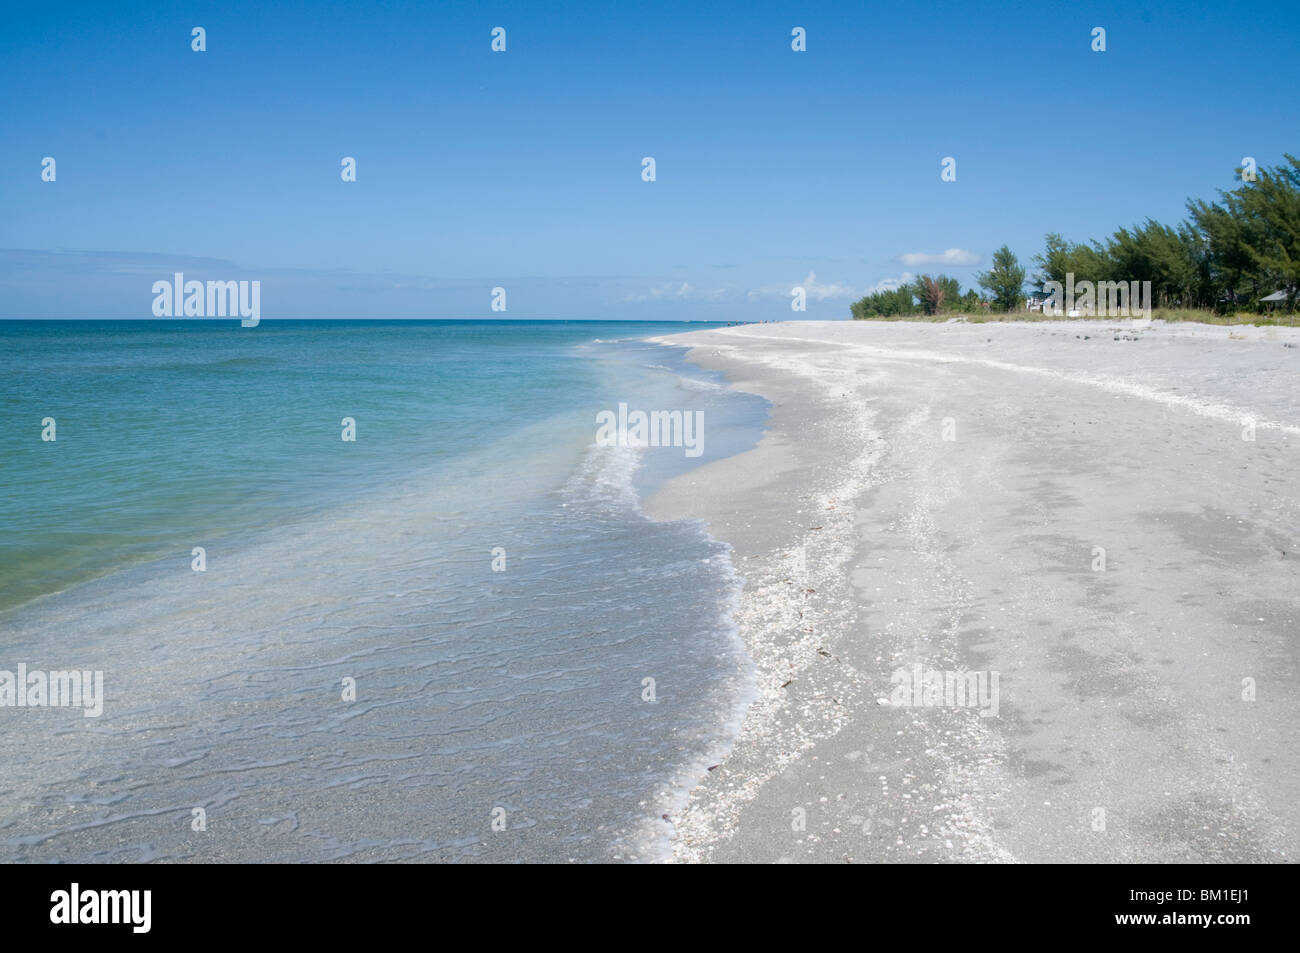 Beach covered in shells, Captiva Island, Gulf Coast, Florida, United States of America, North America - Stock Image